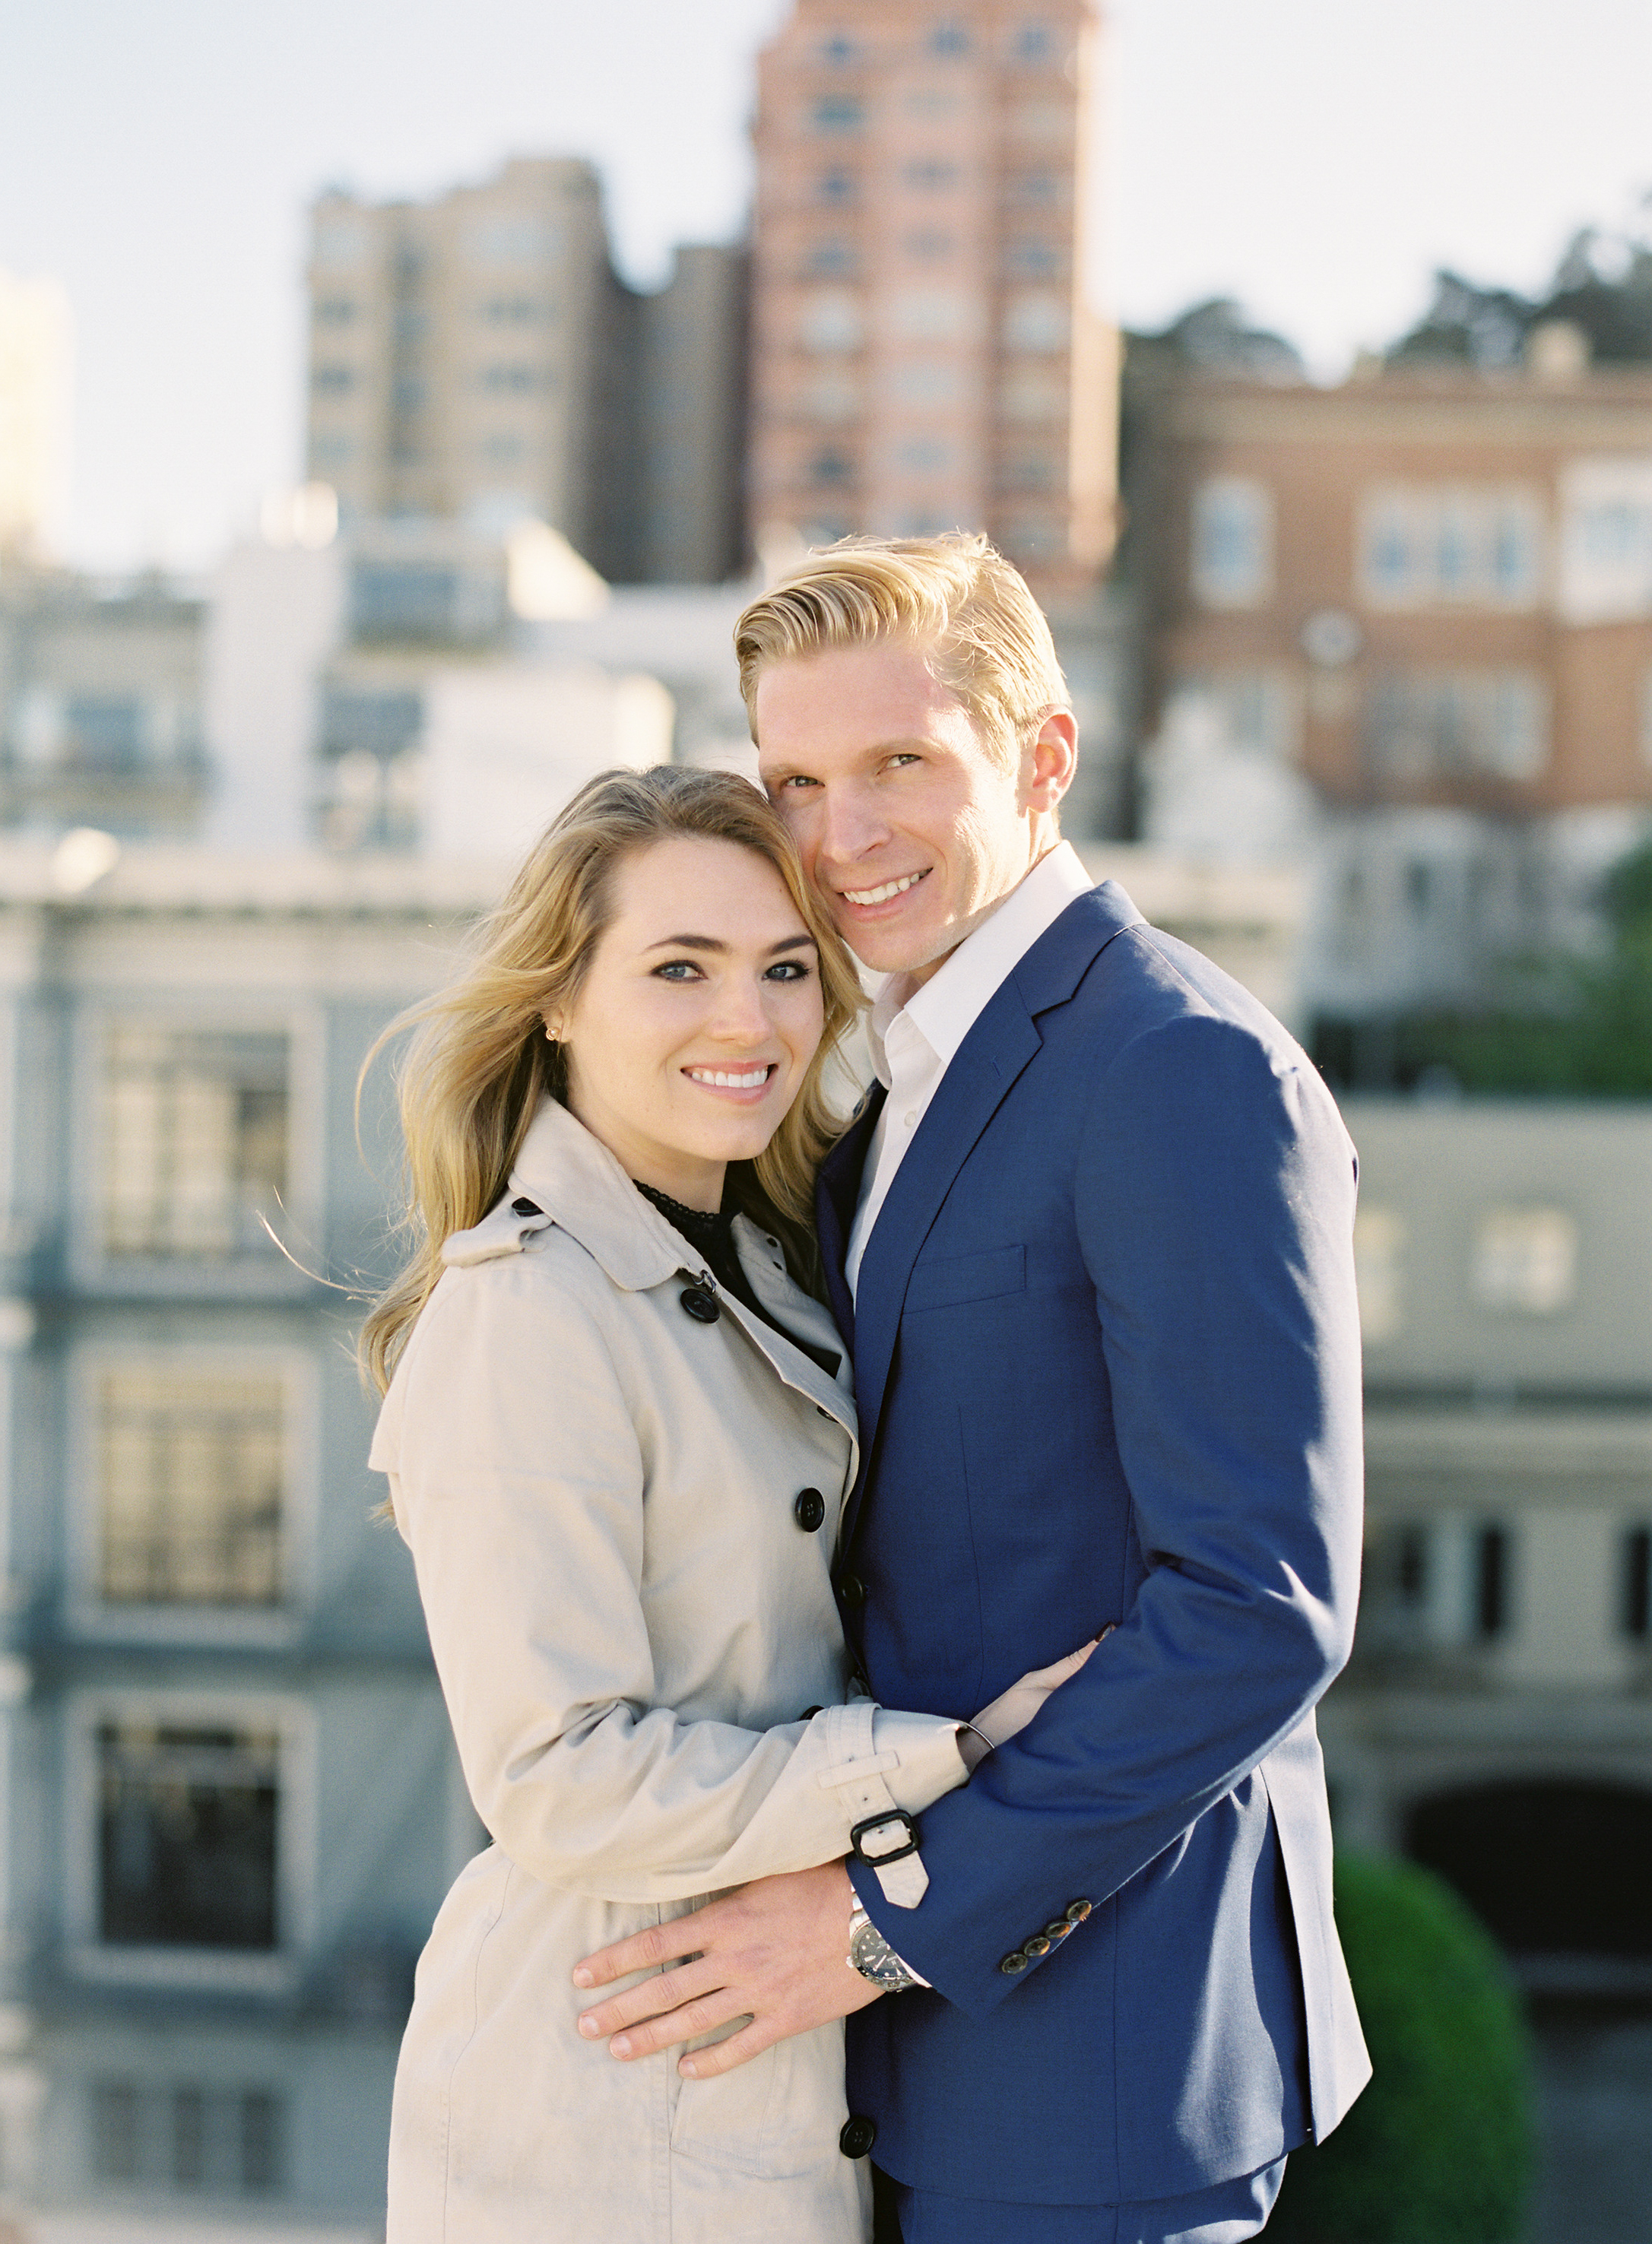 Jessica and Andrew Engagement-Carrie King Photographer-105.jpg